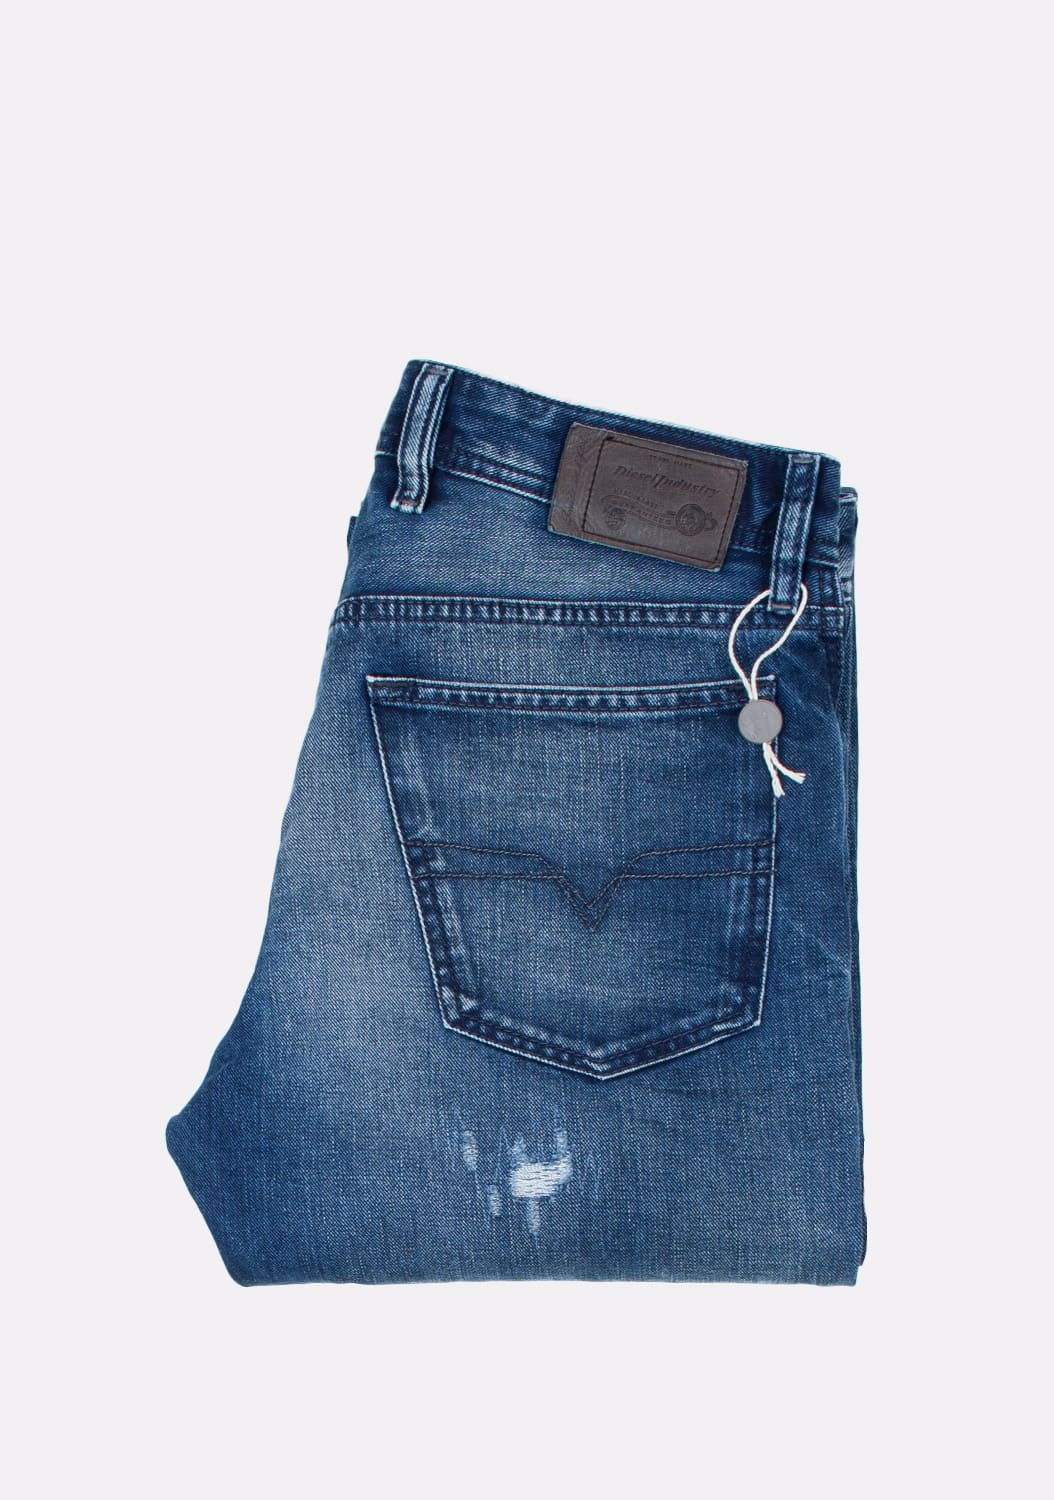 Diesel-Waykee-0839E-Regular-Straight-dydis-30-34 (1)